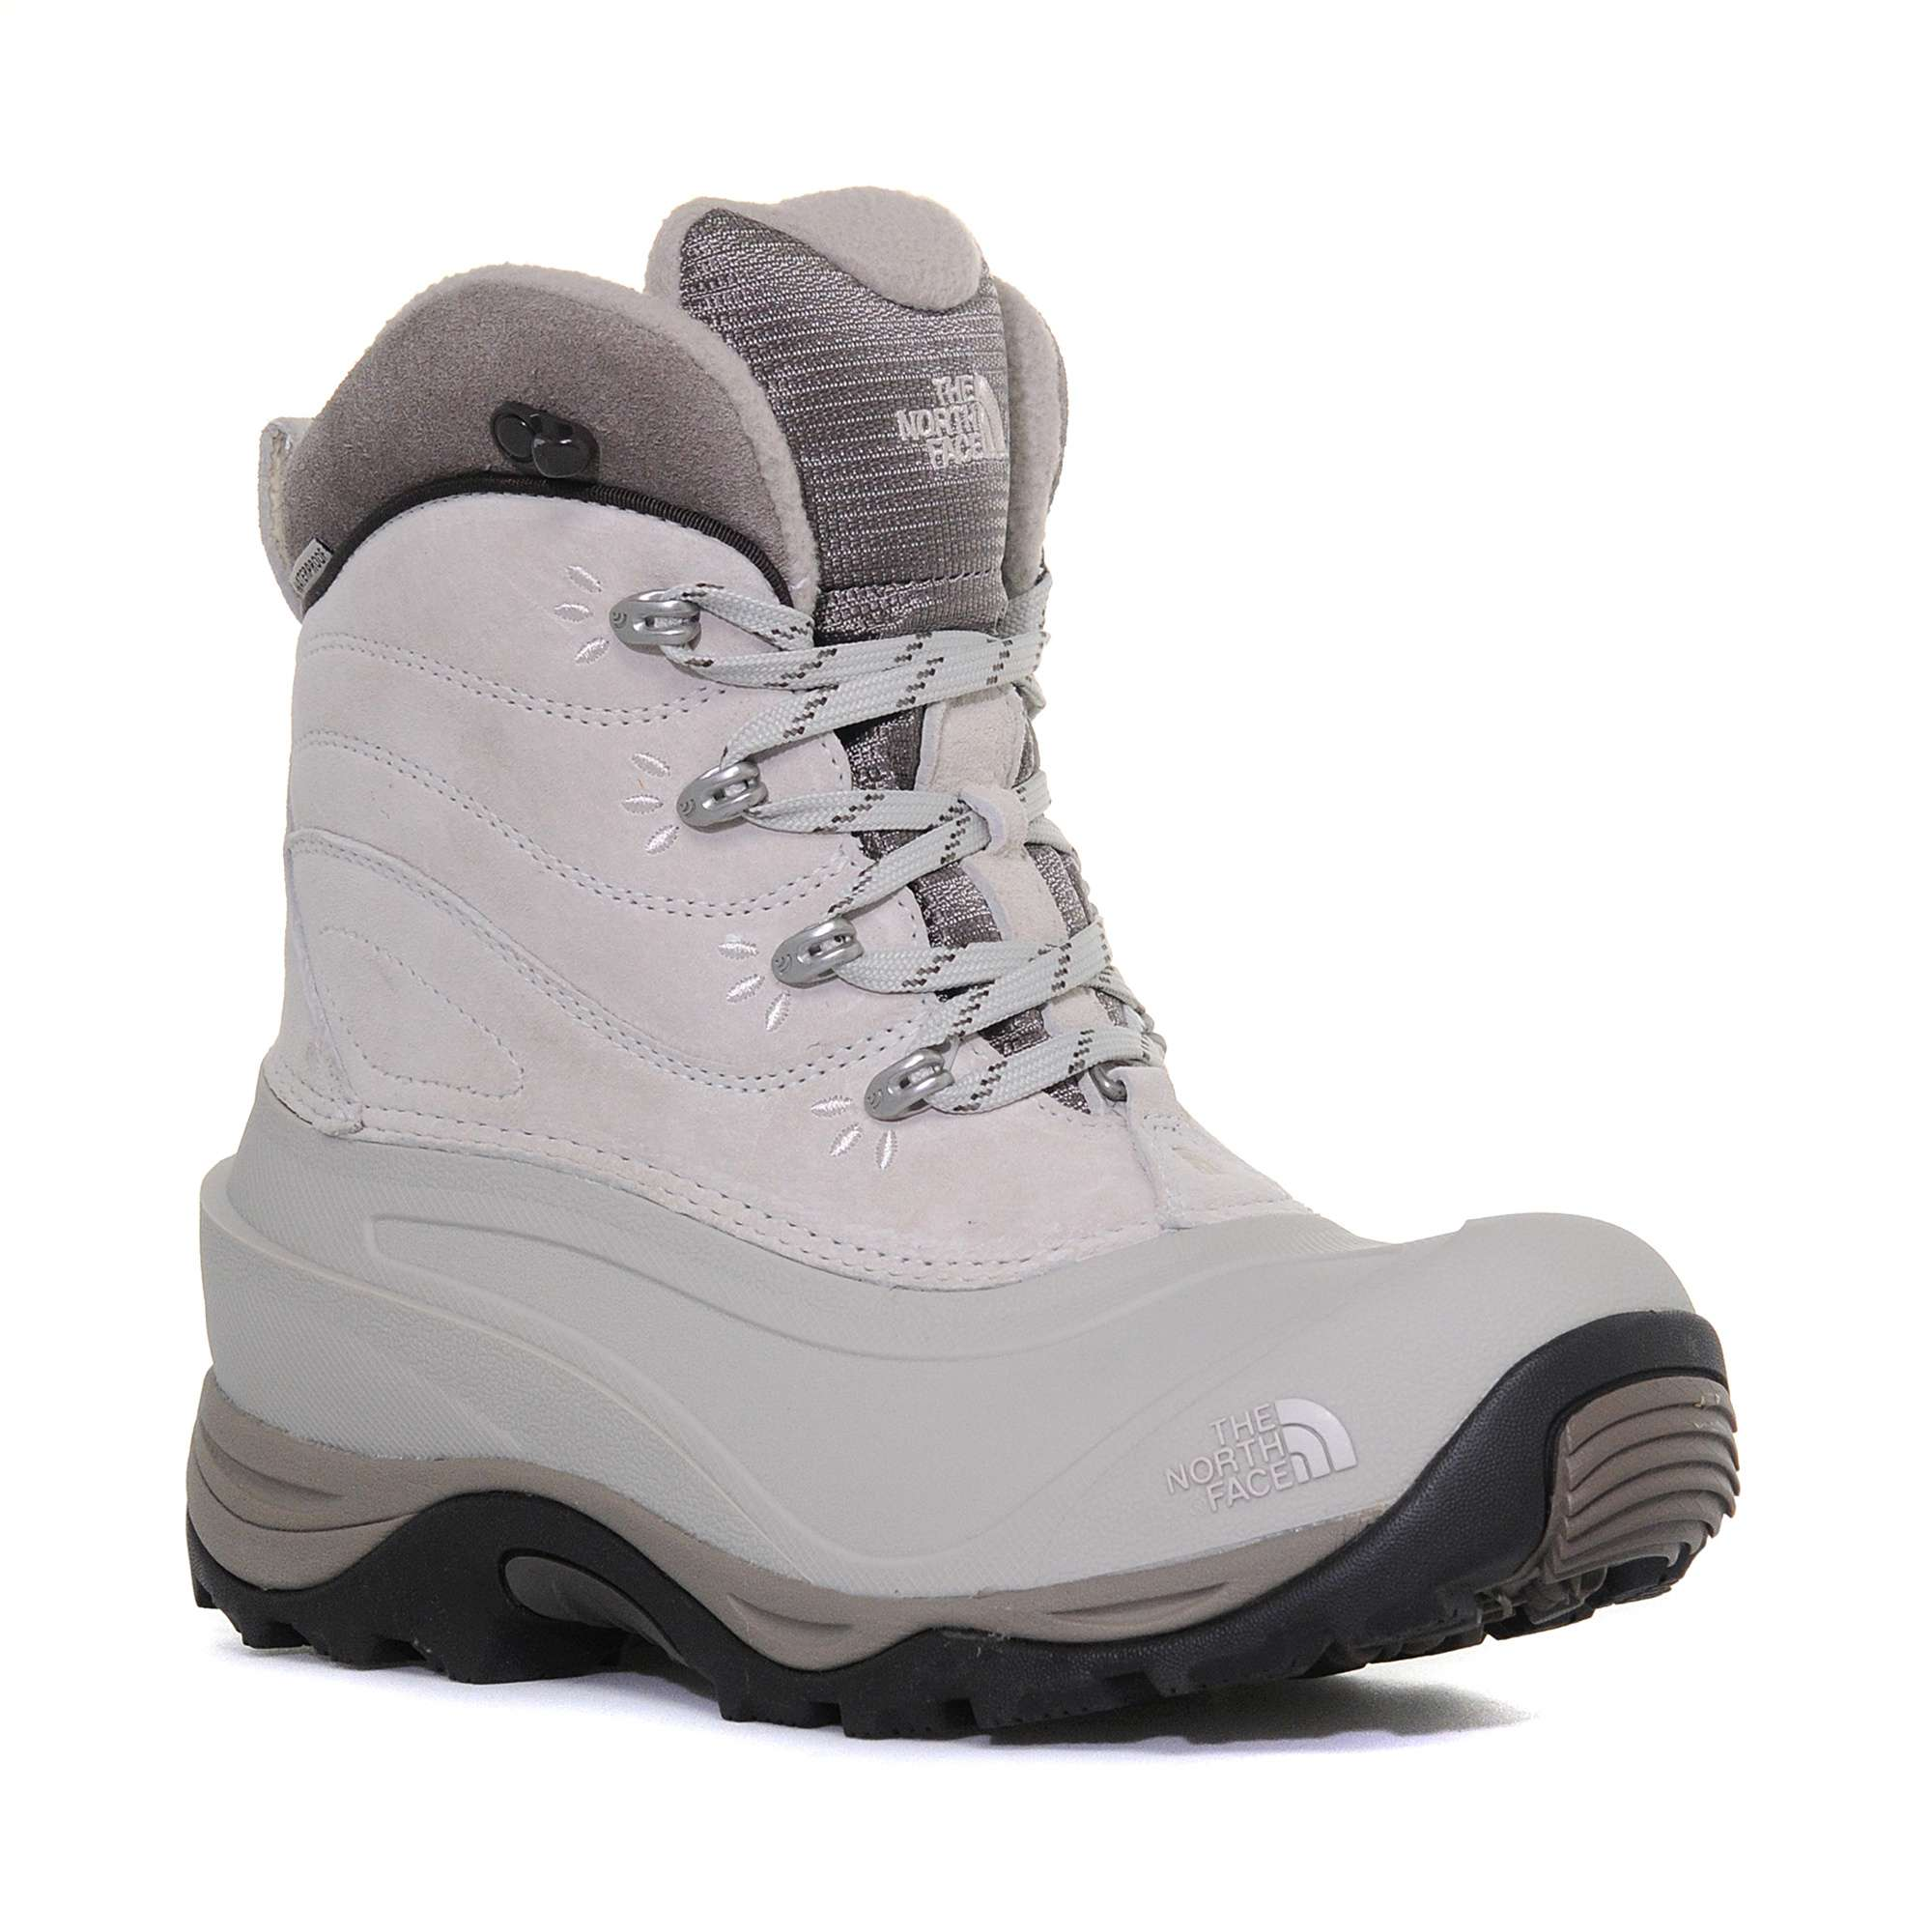 THE NORTH FACE Women's Chilkats II Snow Boots